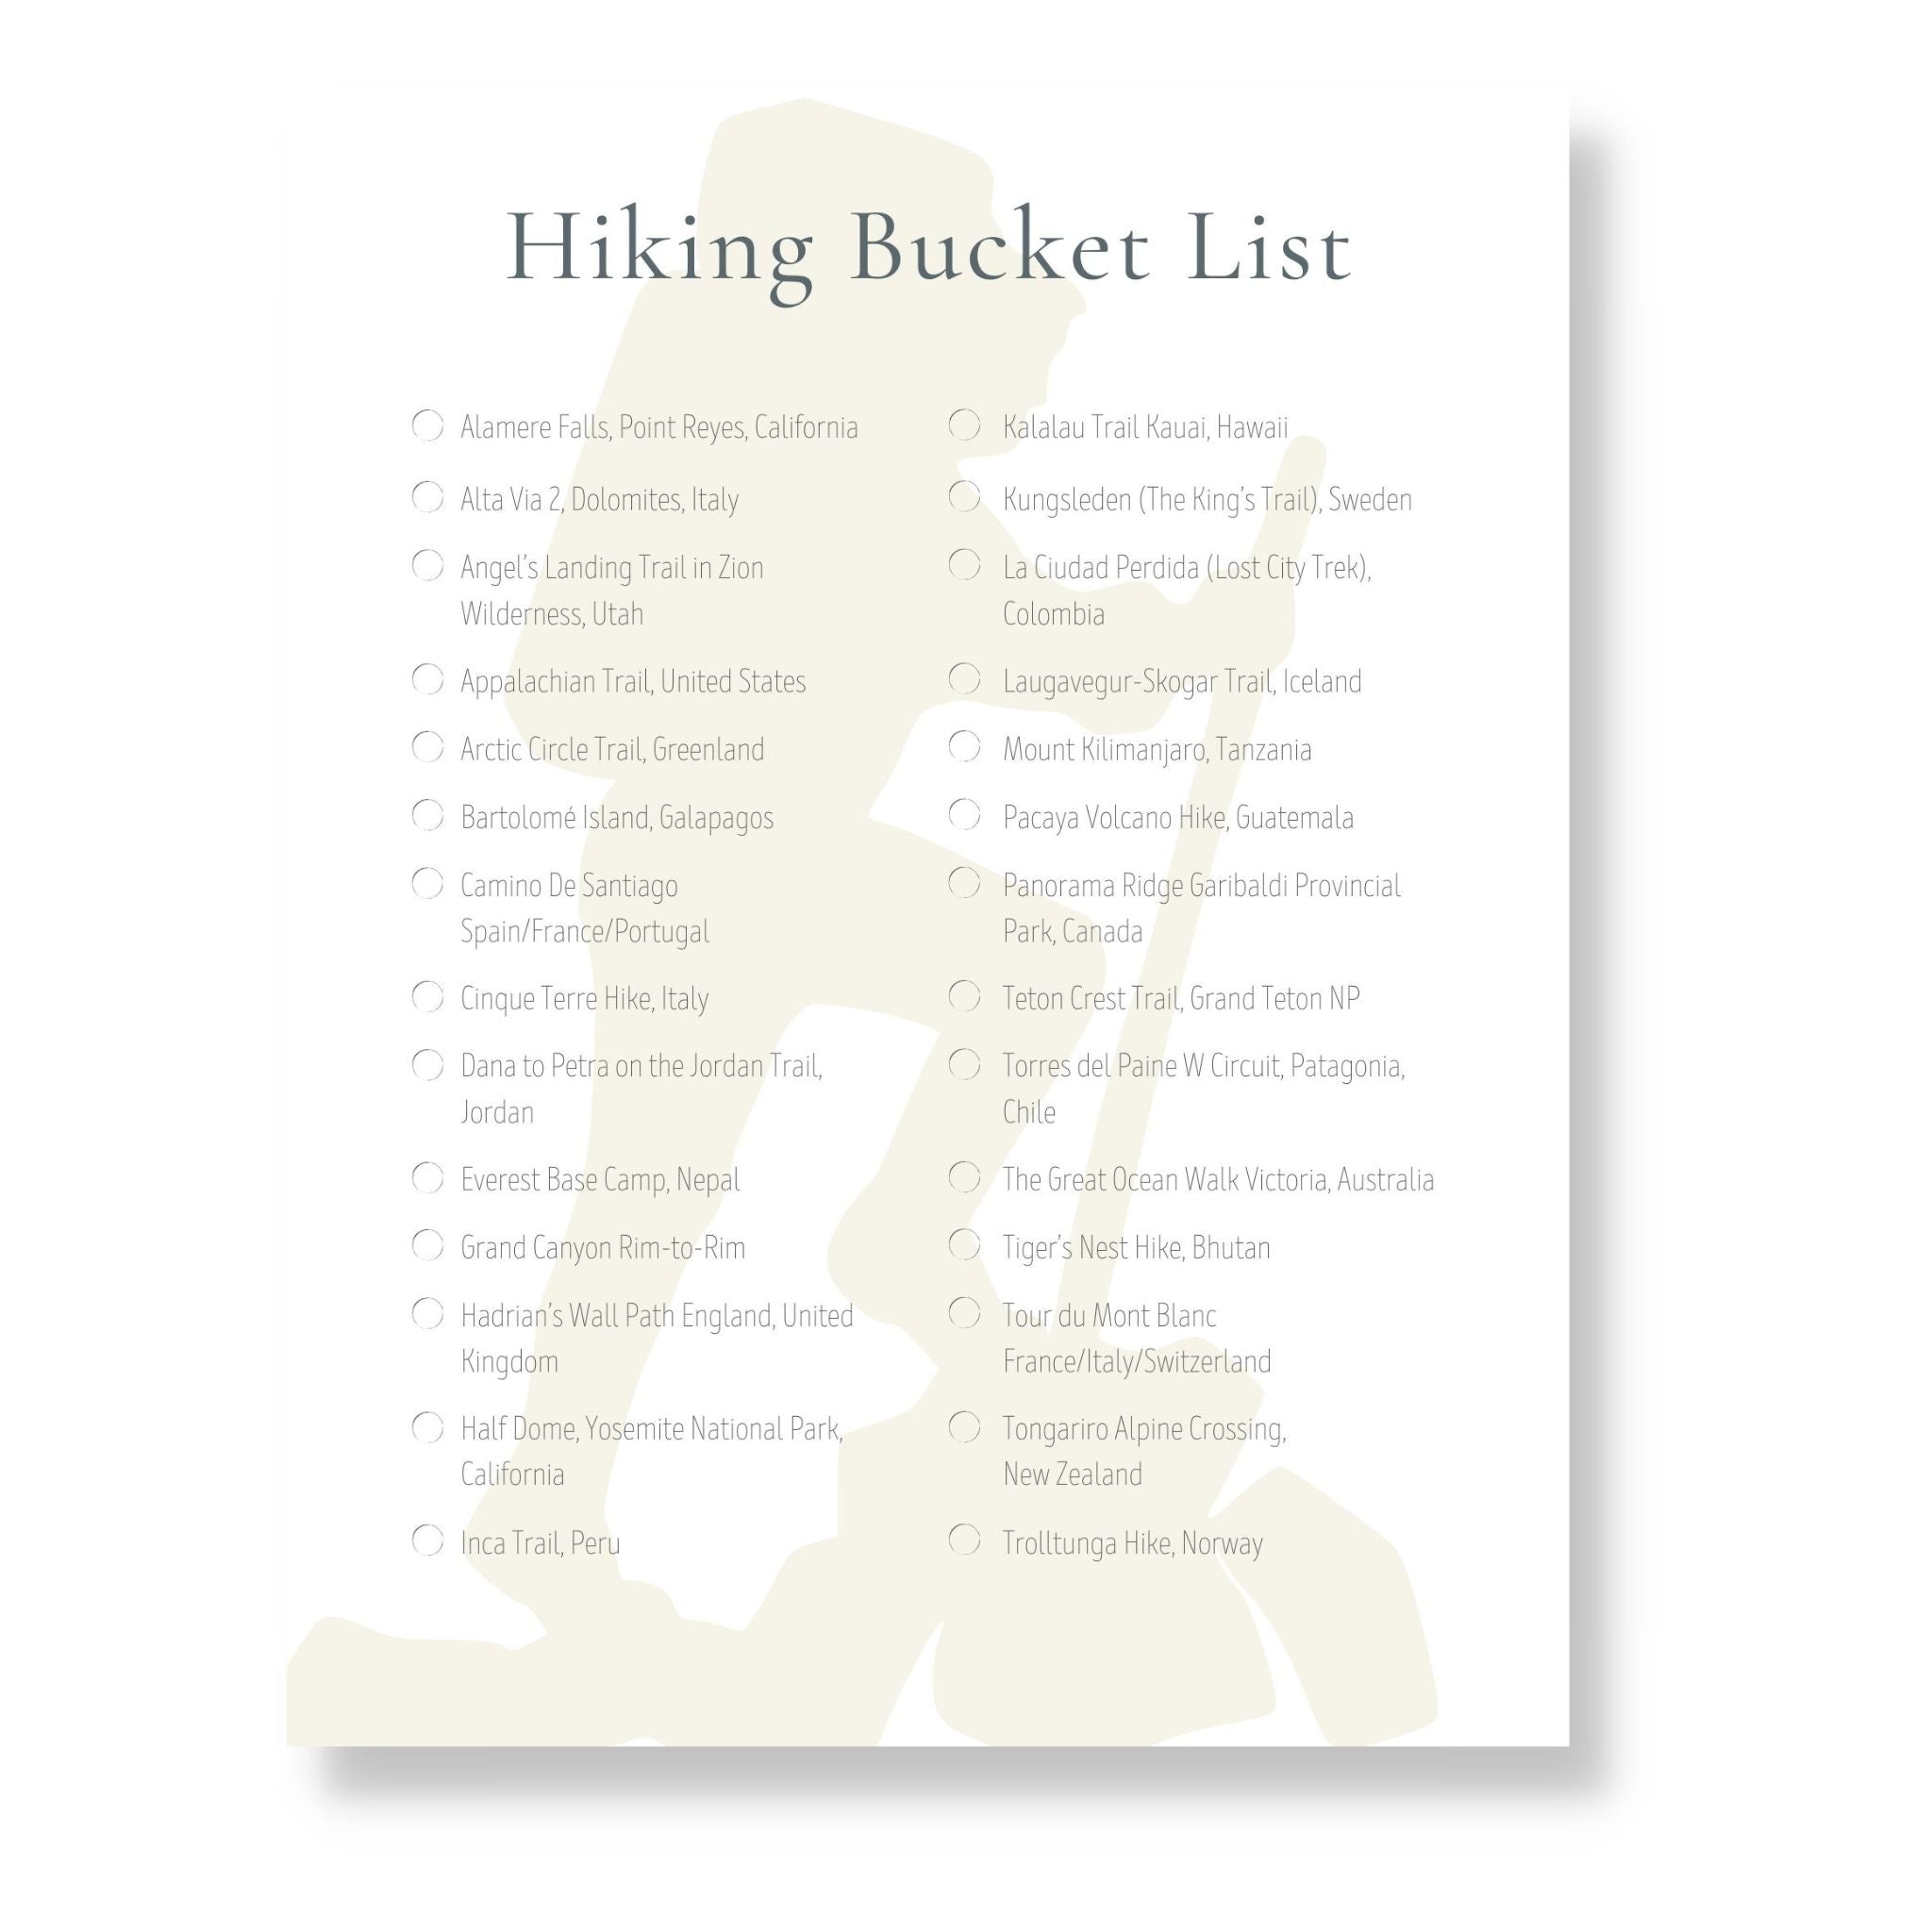 Hiking Bucket List (Printable)